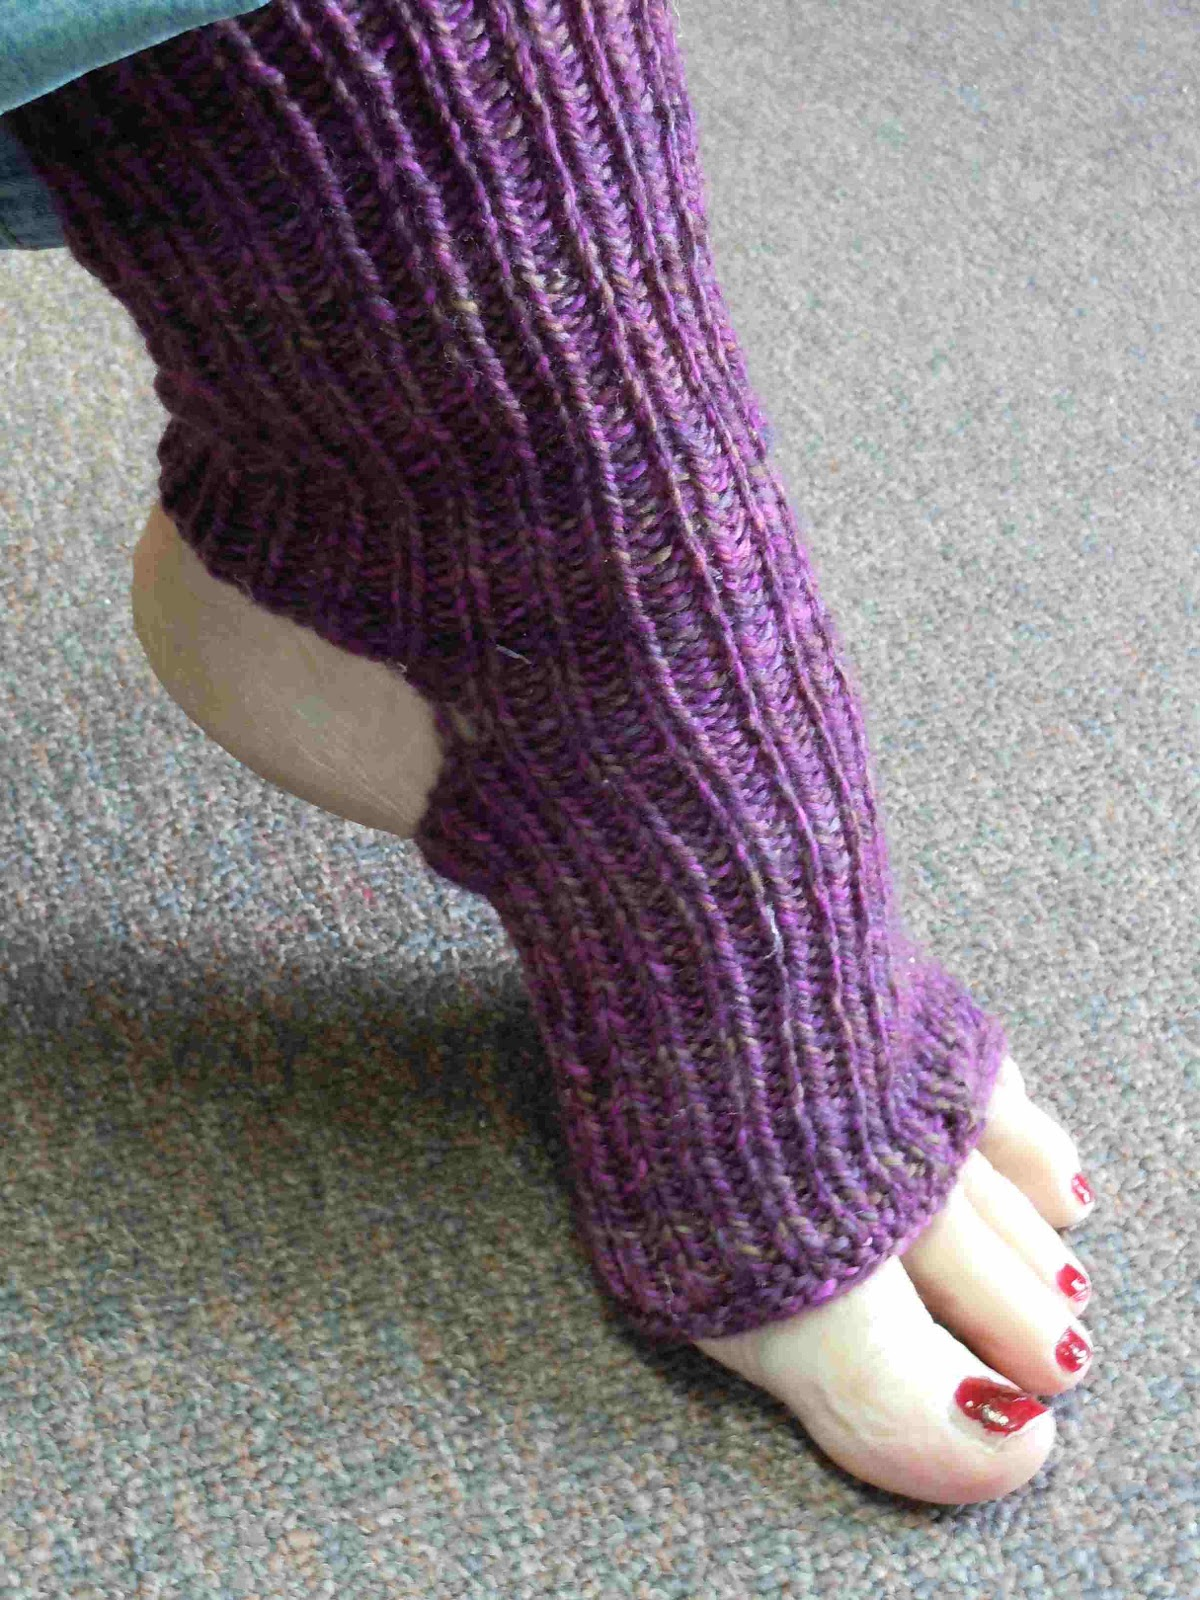 Easy Knitting Pattern For Yoga Socks : Mountain Colors Hand Painted Yarns: Holiday Knitting Ideas ...